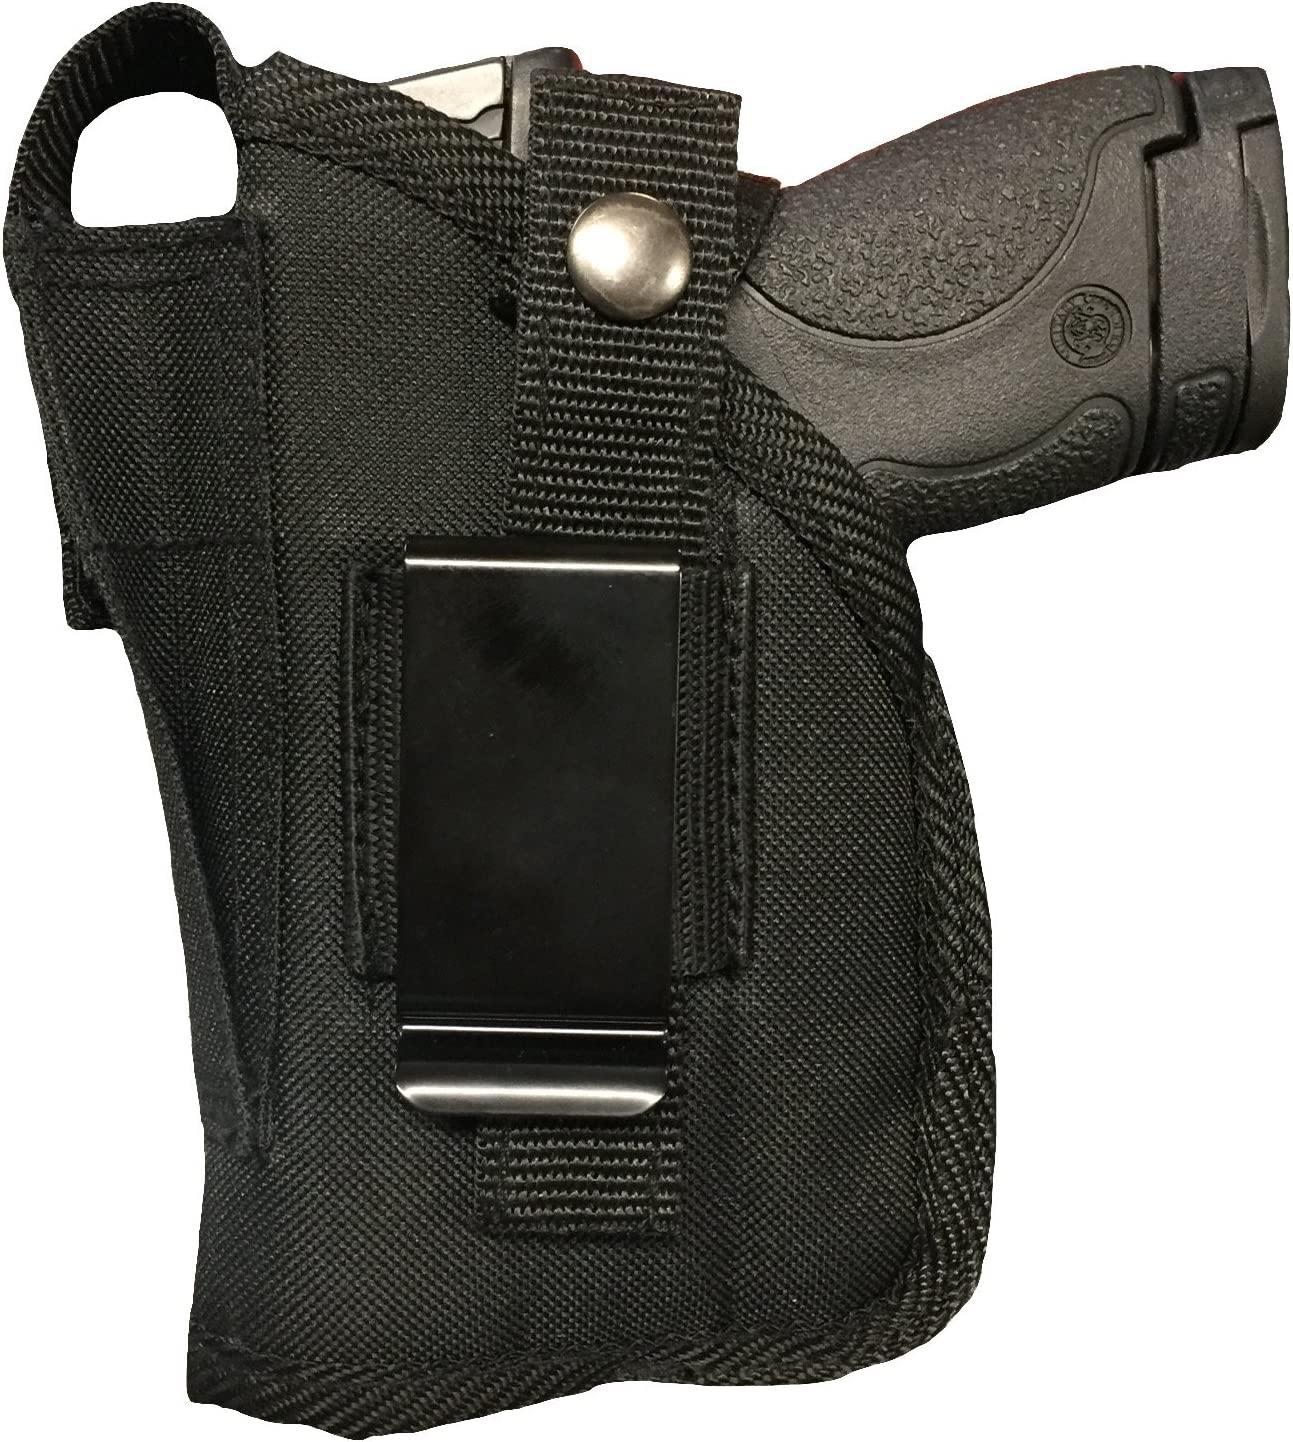 Nylon Gun Holster Limited price for with SR9C Special price Laser Ruger